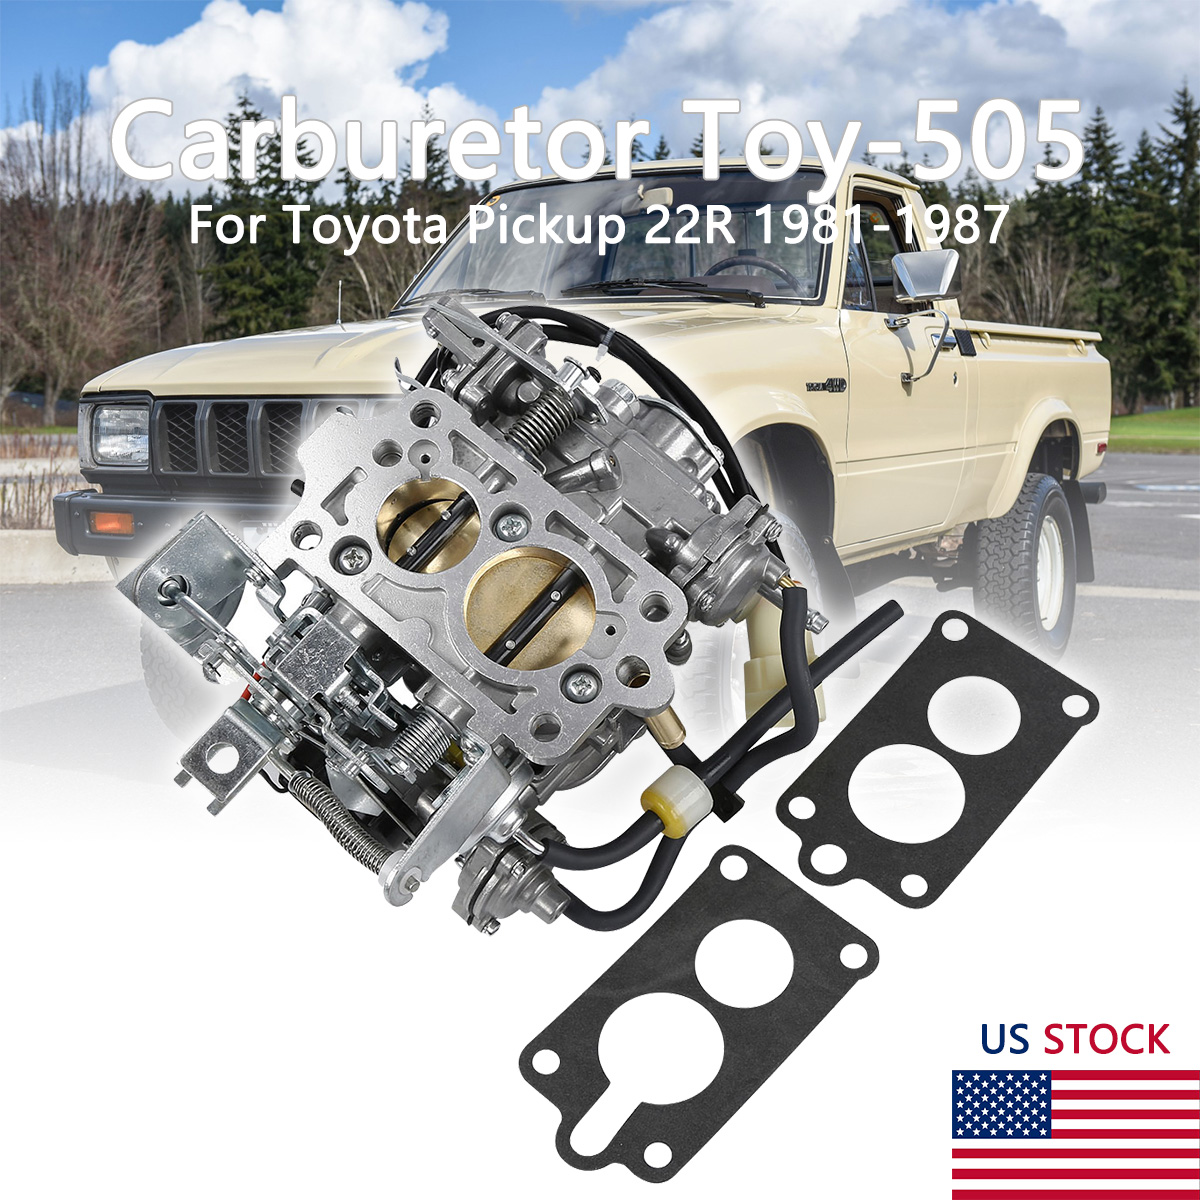 Nice Carburetor Toy-505 For Toyota Pickup 22R 1987-1987 W// Green Round Cool